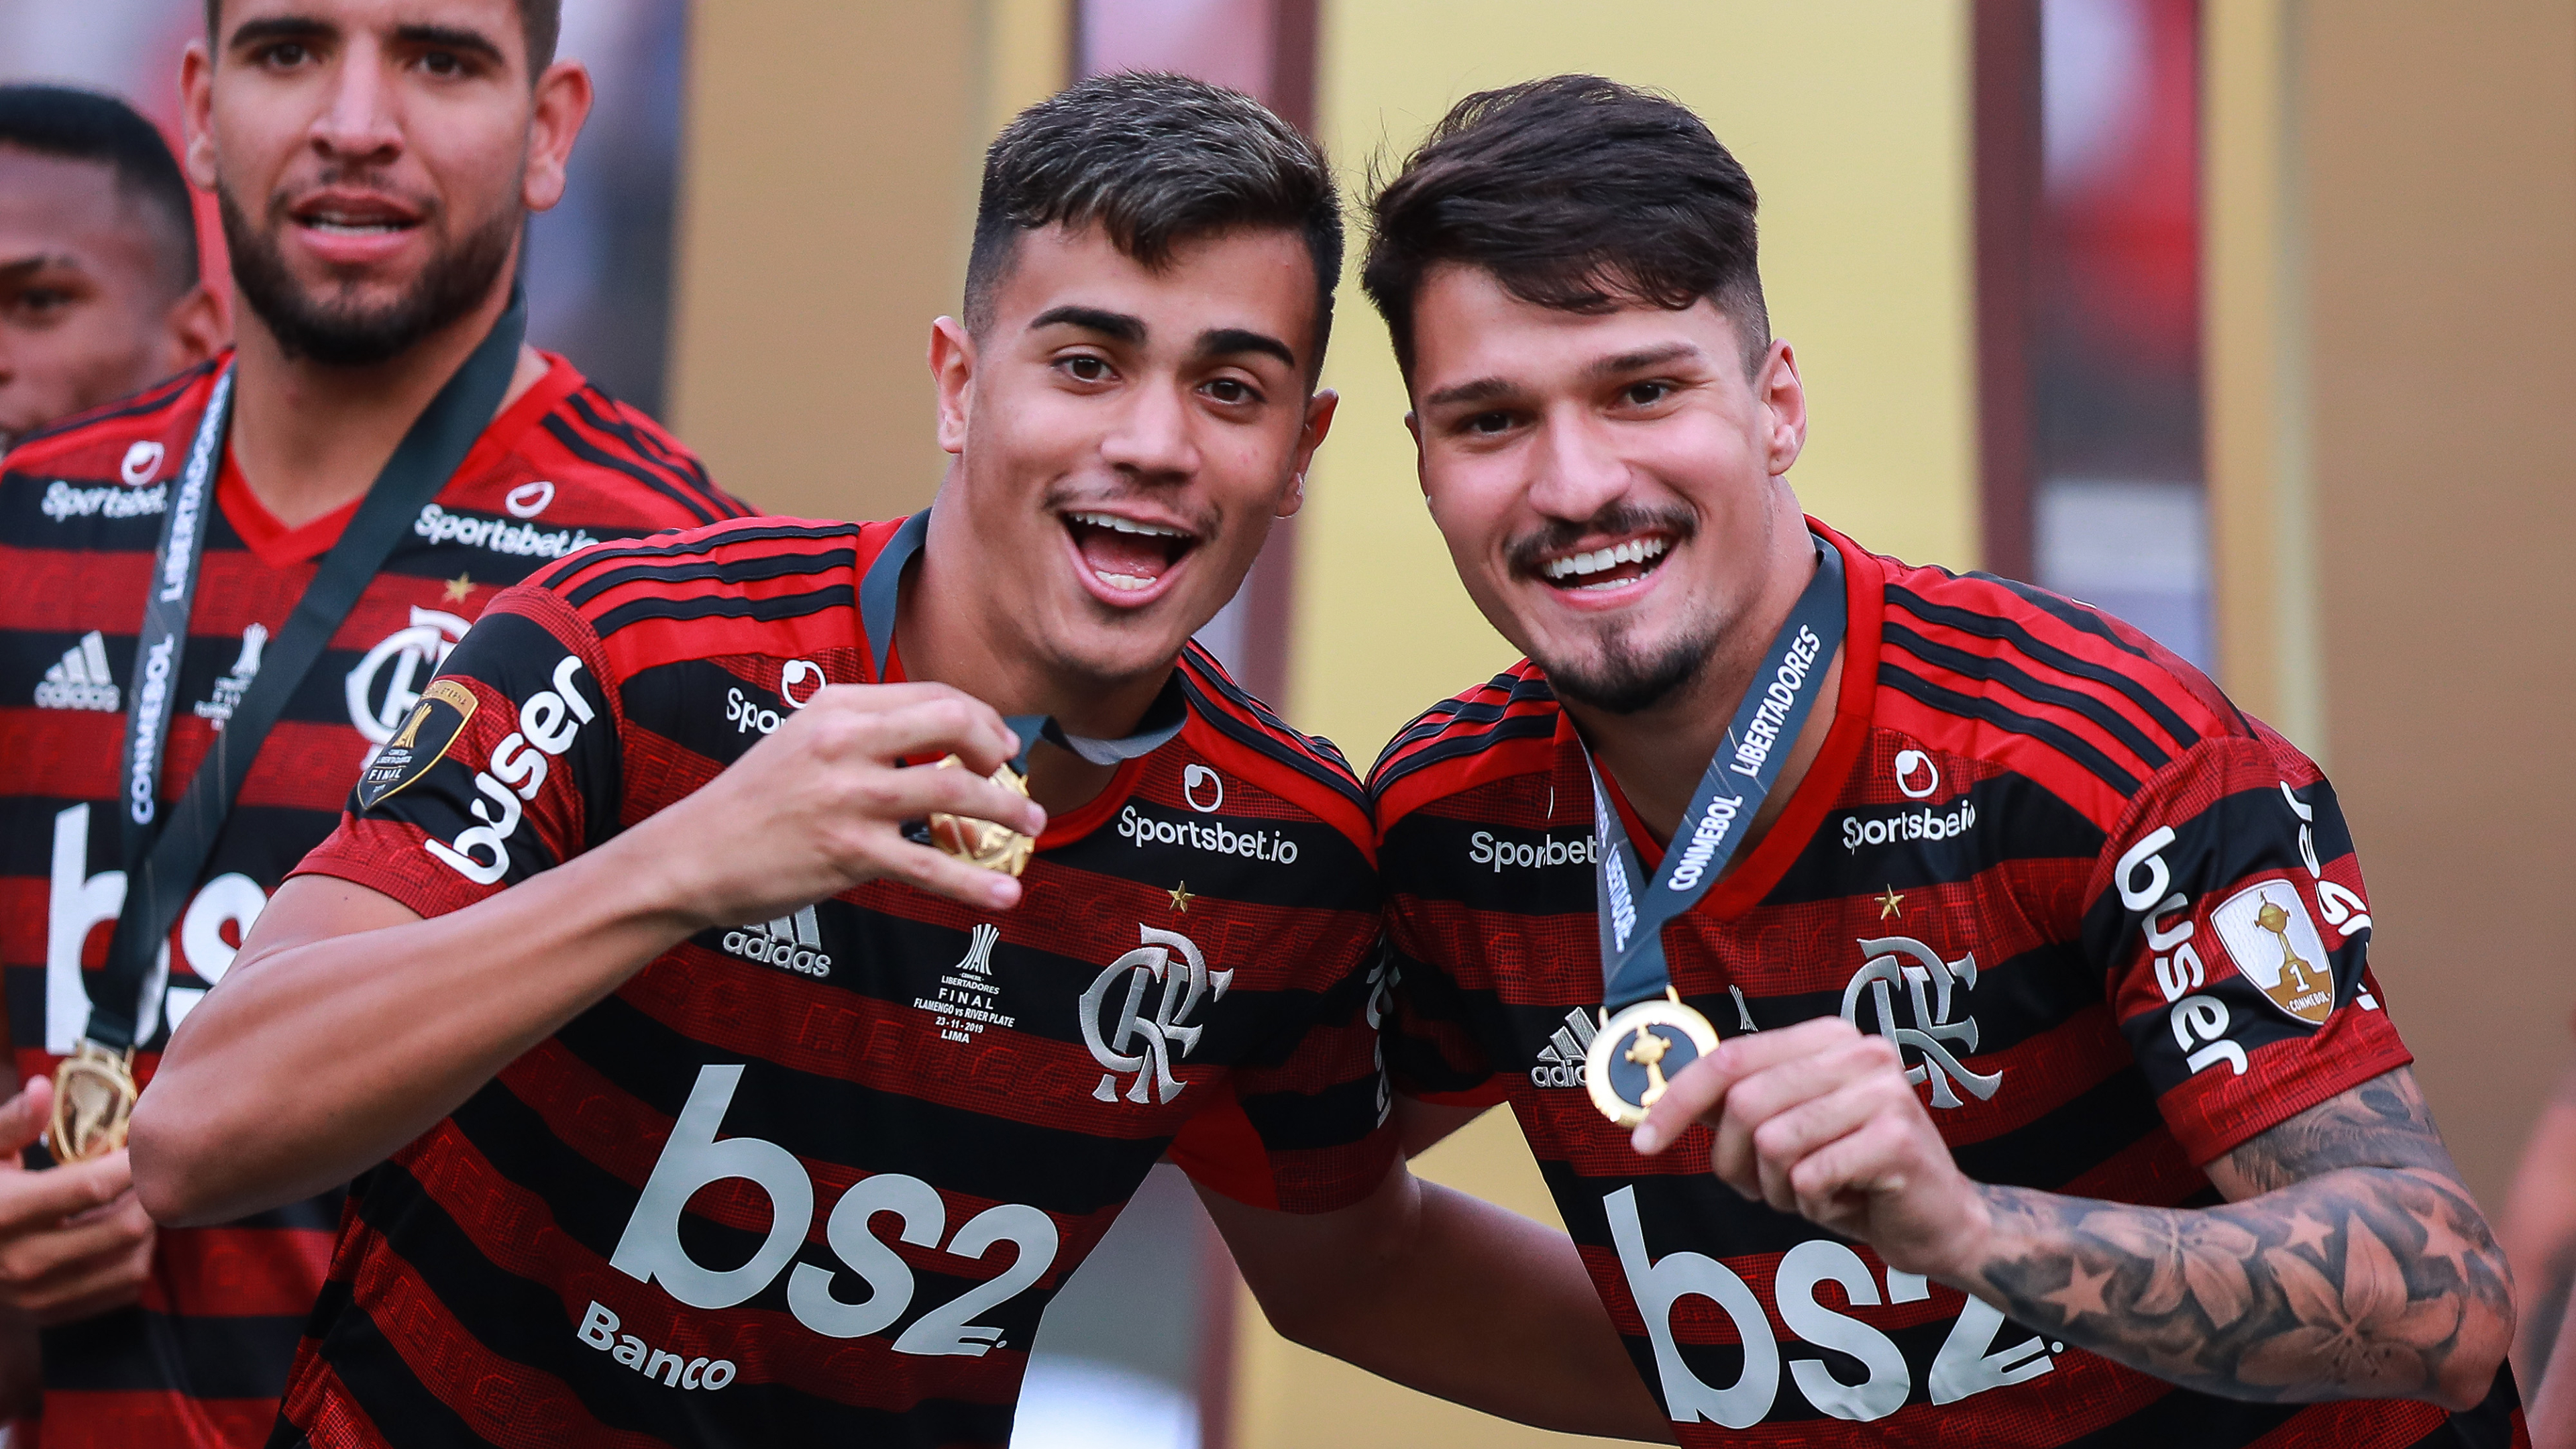 'Let's wait and see' - Flamengo star Reinier responds to possible Real Madrid move